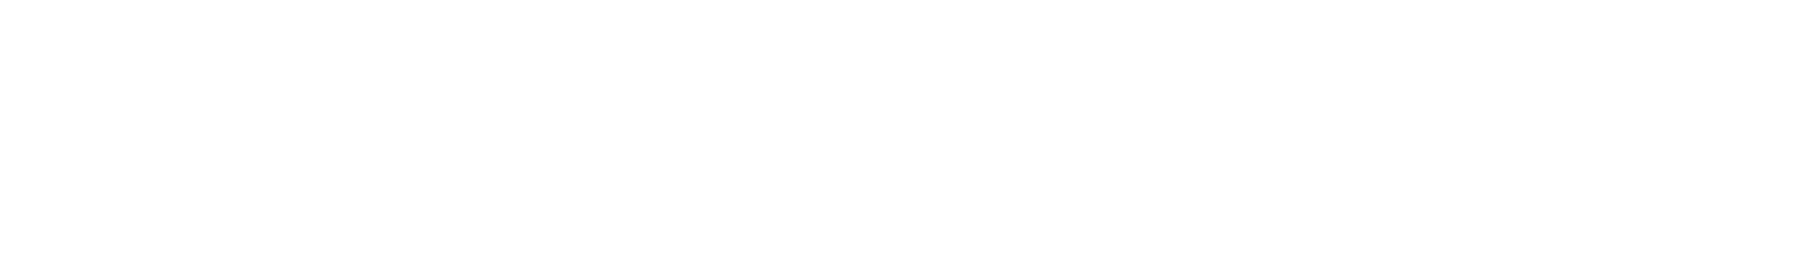 World of Warships Community